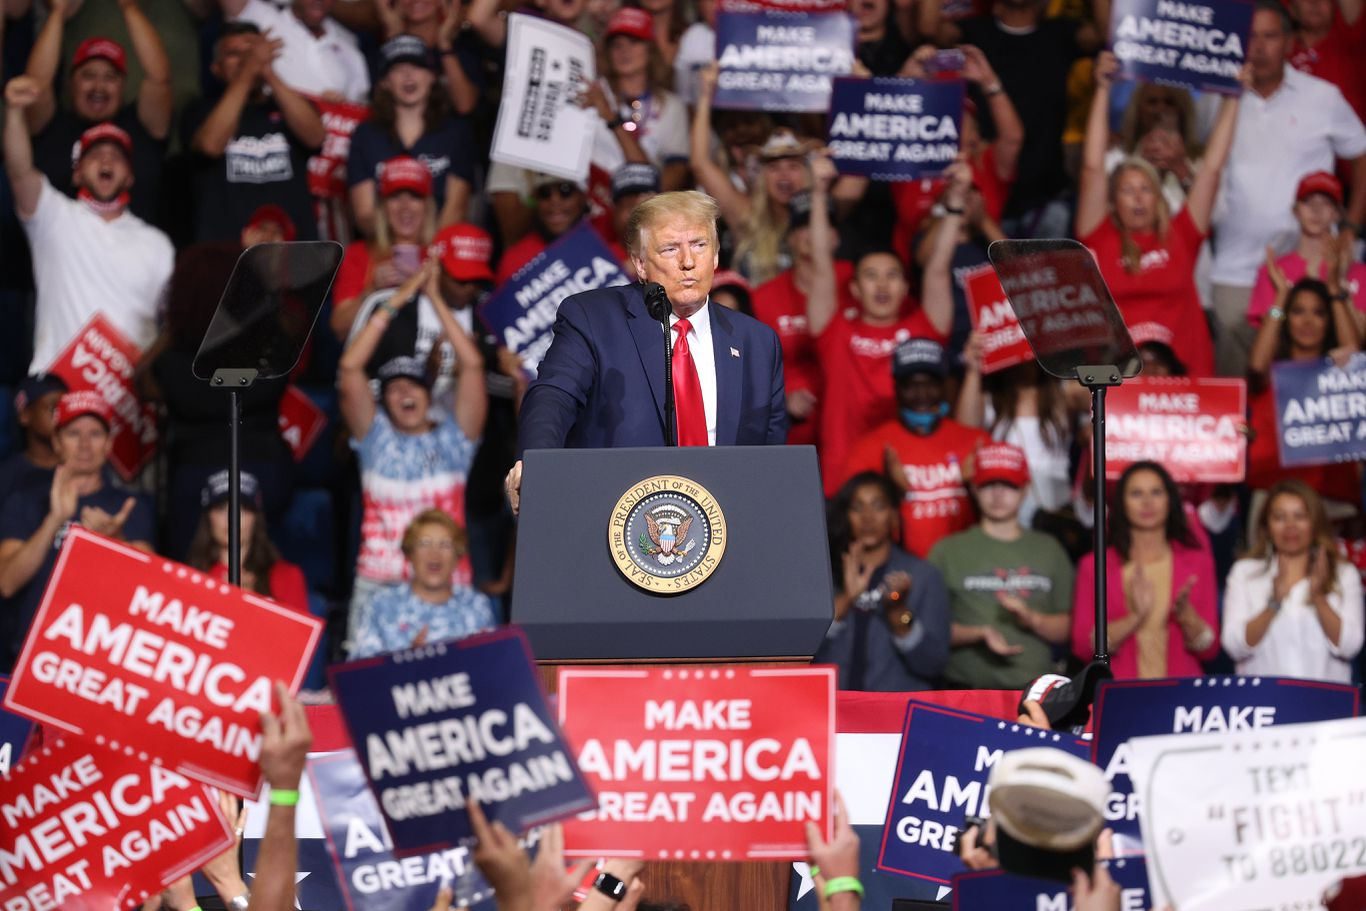 Trump advisers brace for recriminations over lackluster crowd at Tulsa rally thumbnail